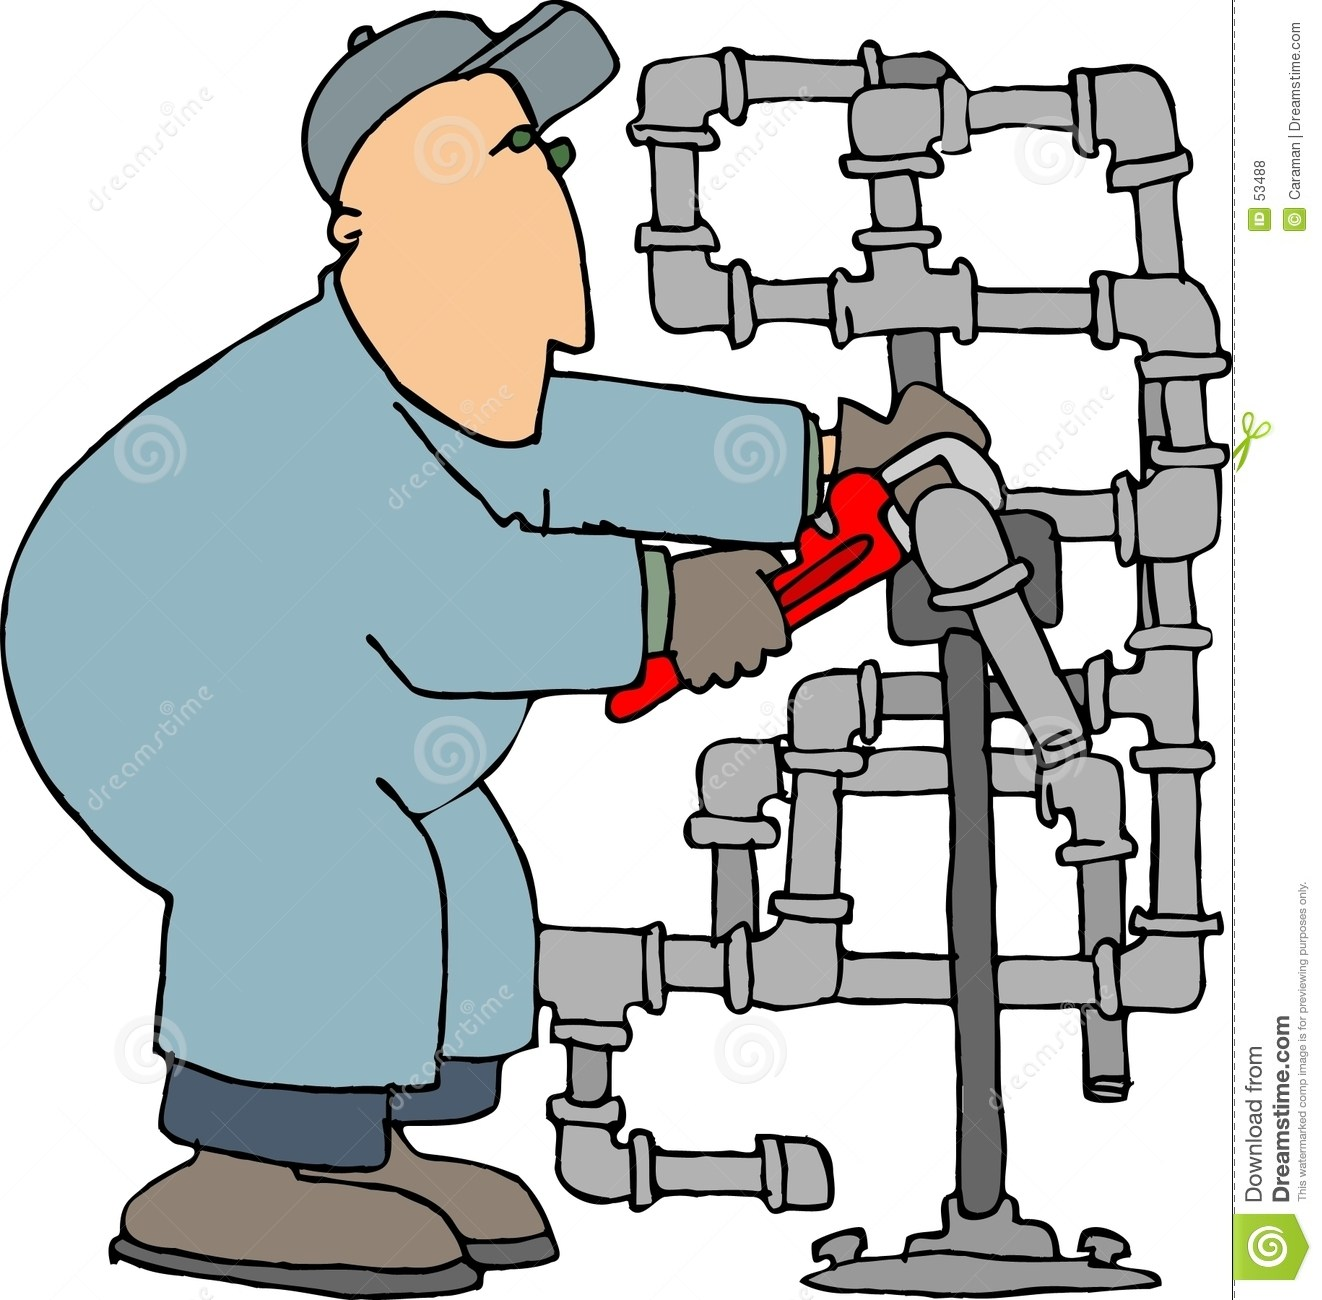 Pipefitter clipart png free stock Pipefitter clipart 5 » Clipart Portal png free stock